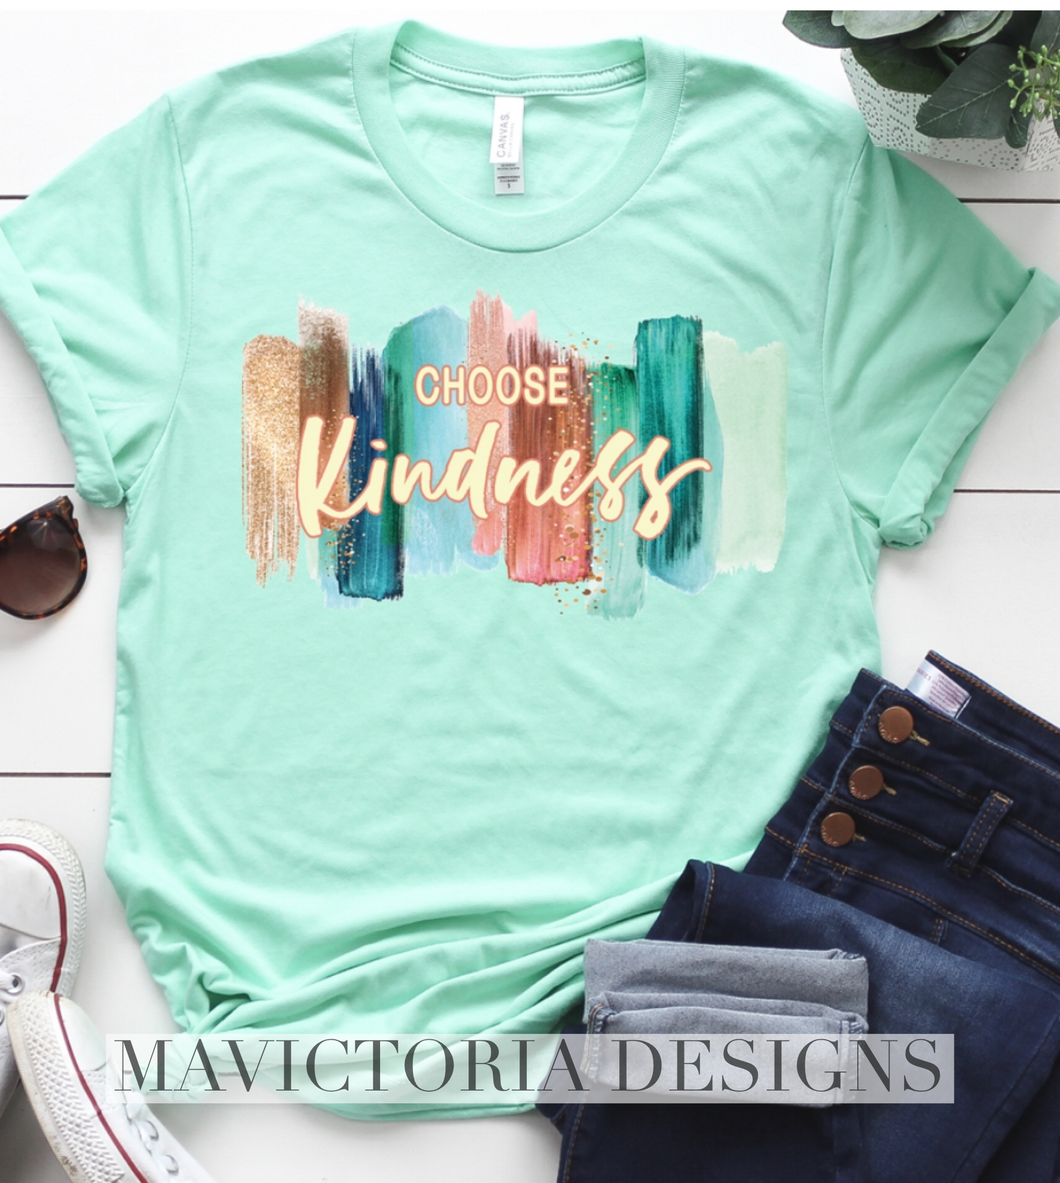 Choose kindness watercolor tank tee crew or hoodie - Mavictoria Designs Hot Press Express